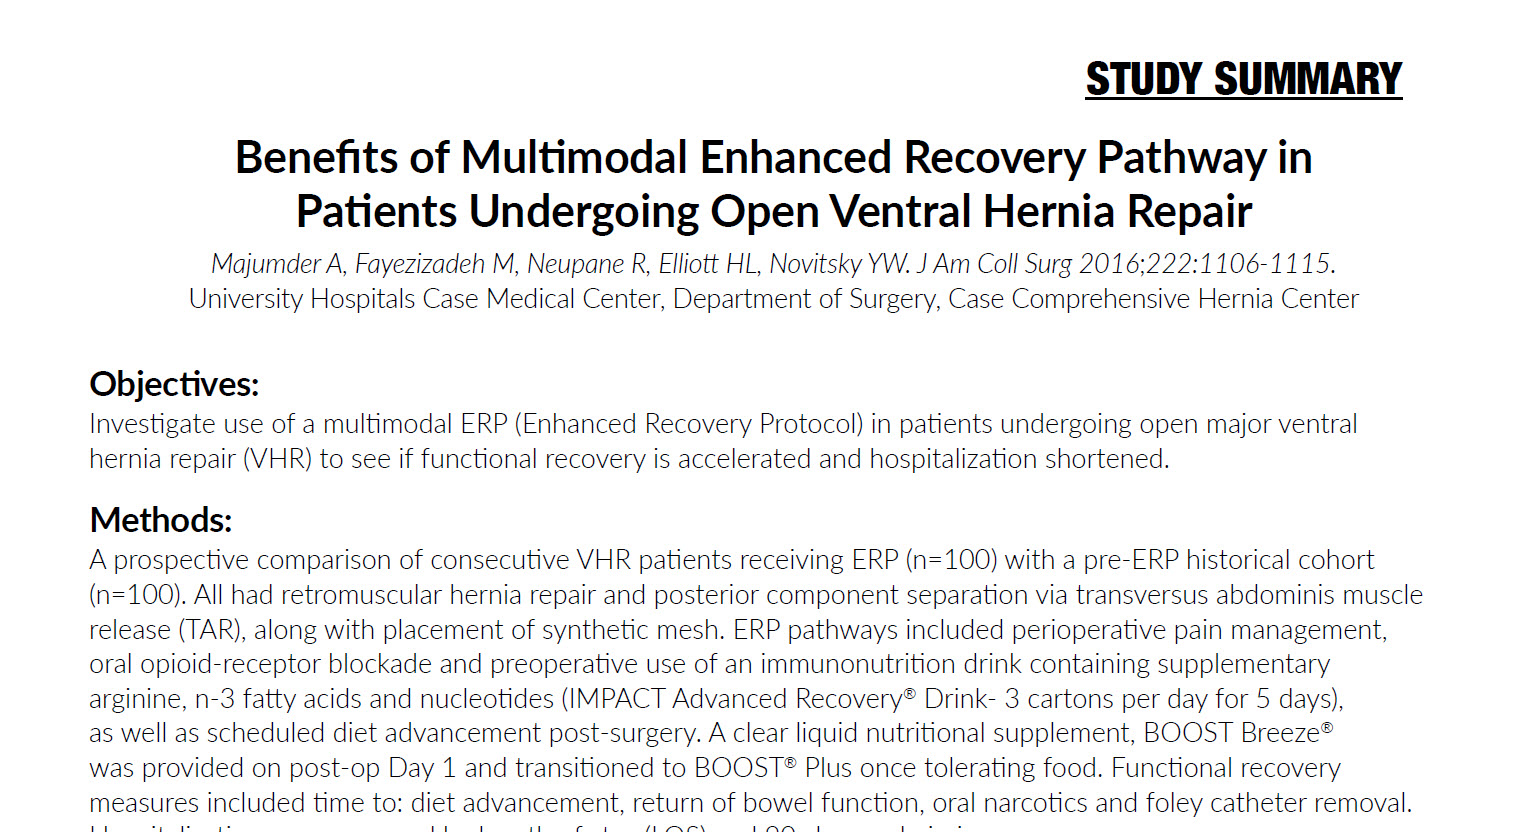 Benefits of Multimodal Enhanced Recovery Pathway in Patients Undergoing Open Ventral Hernia Repair